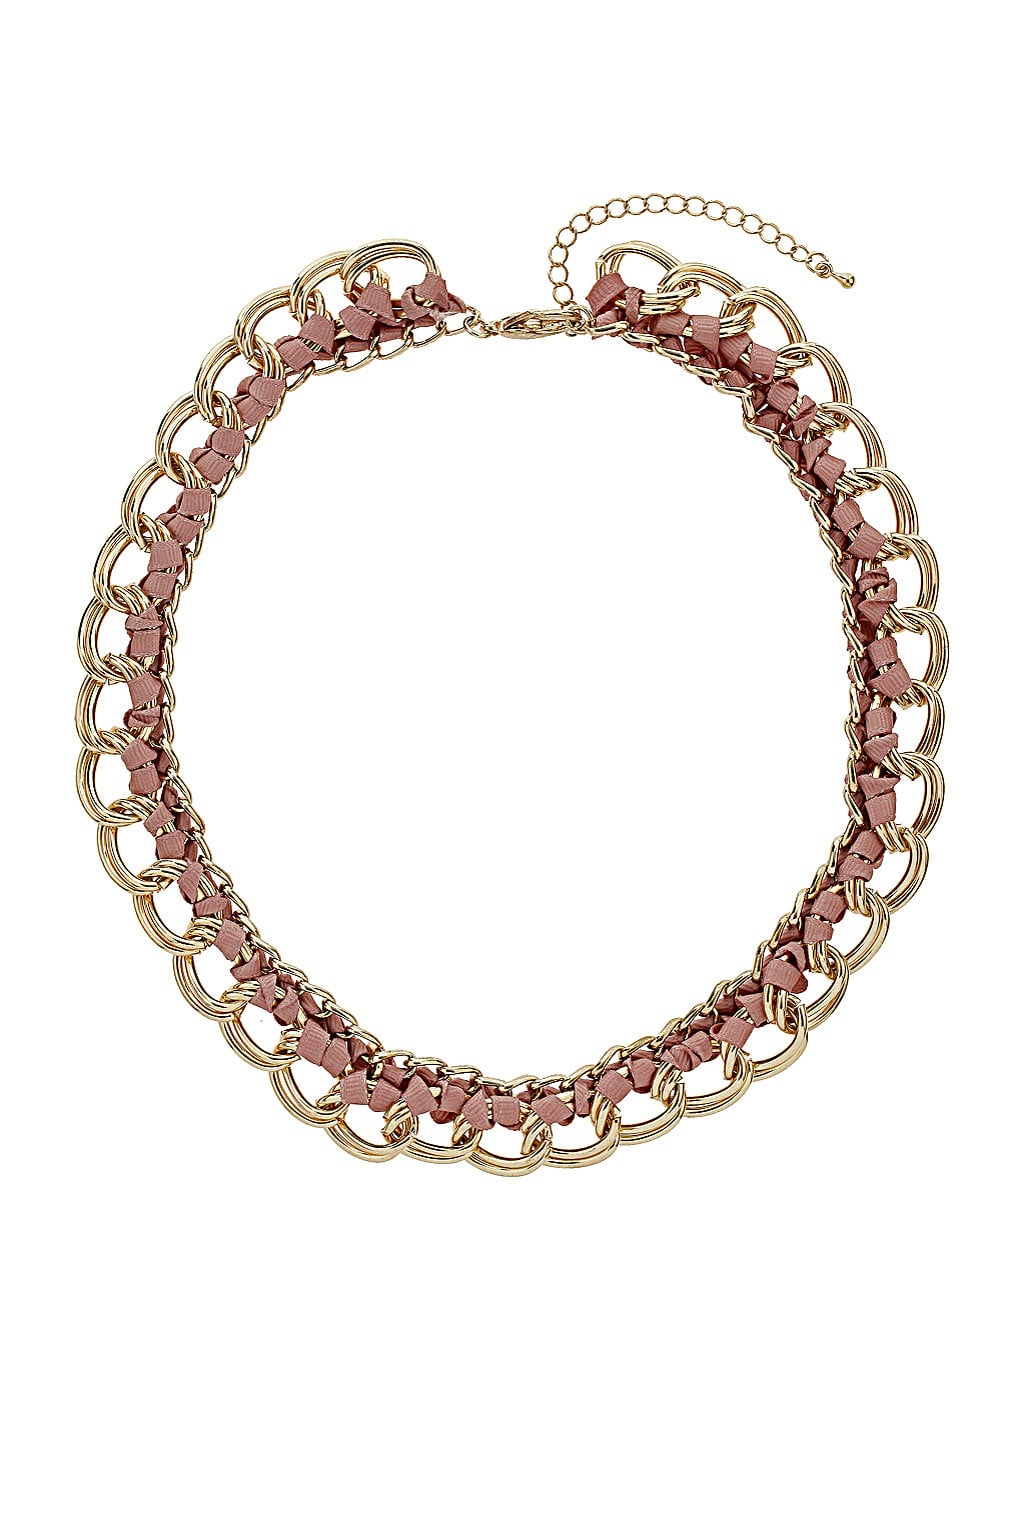 Just a hint of pink ribbon makes this Topshop Ribbon Chain Link Necklace ($30) just a tad girlier than the rest, perfect for pairing with a basic white t-shirt.